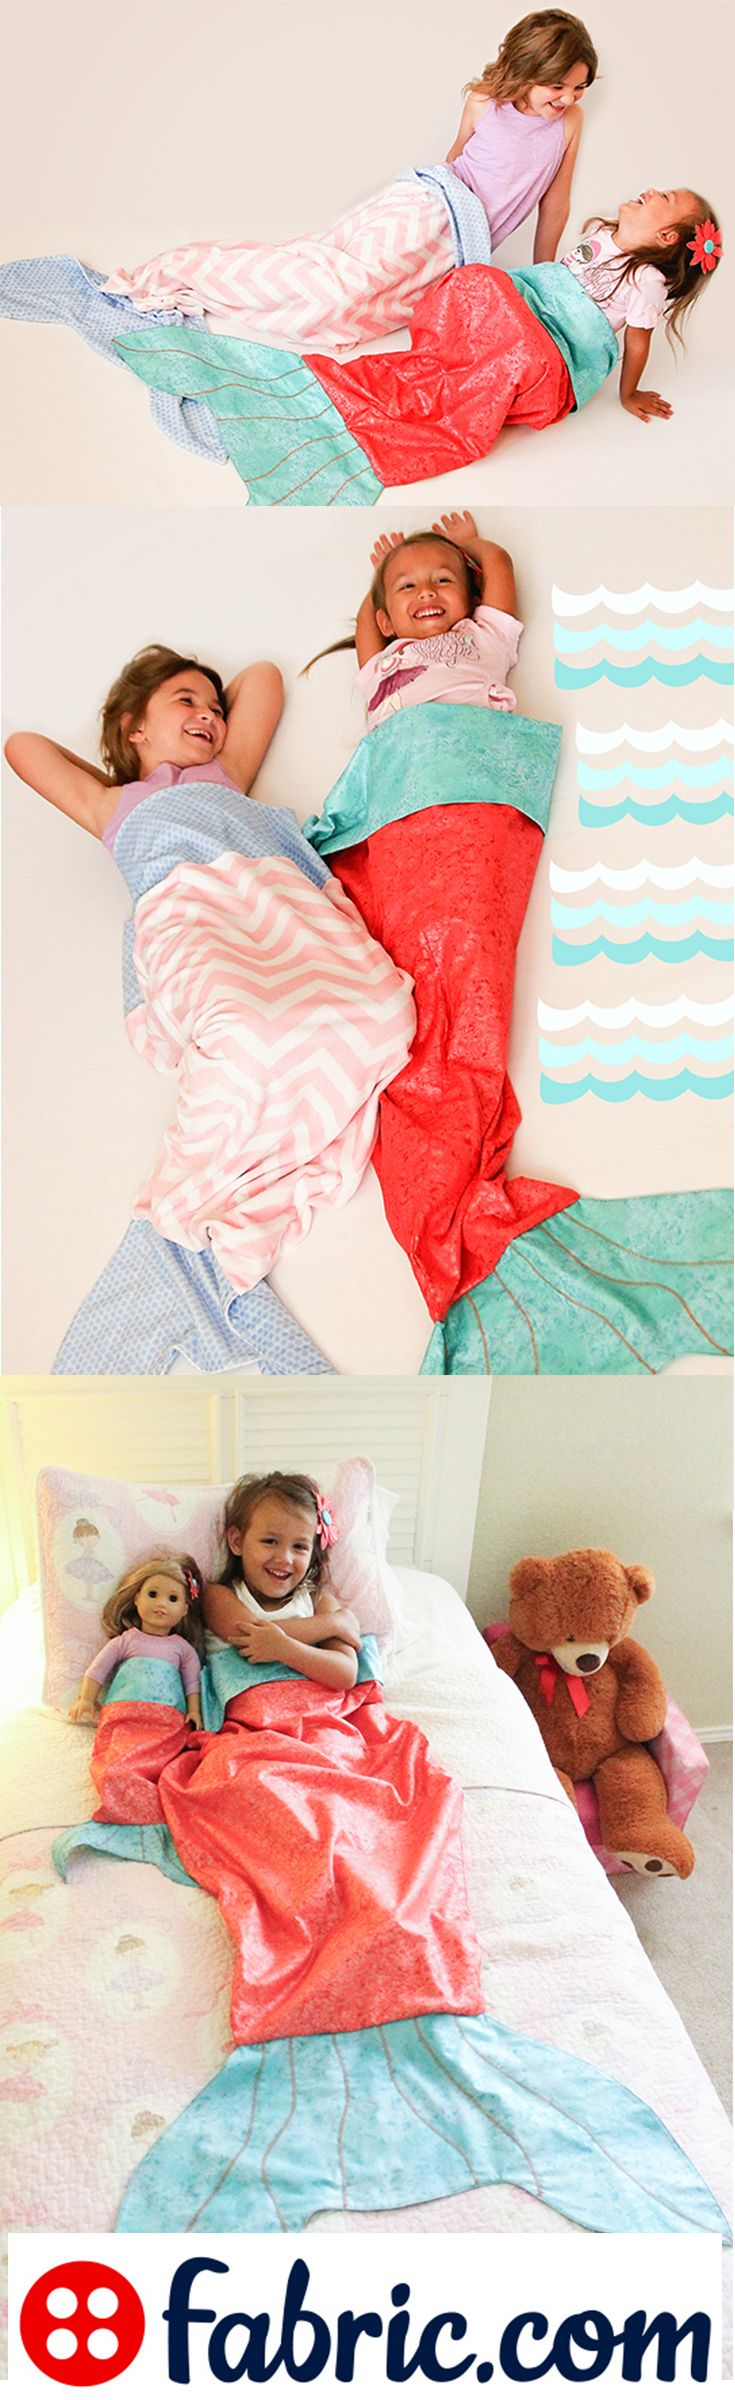 Free mermaid tail tutorial and pattern from fabric.com! Click to make it now.                                                                                                                                                                                 More